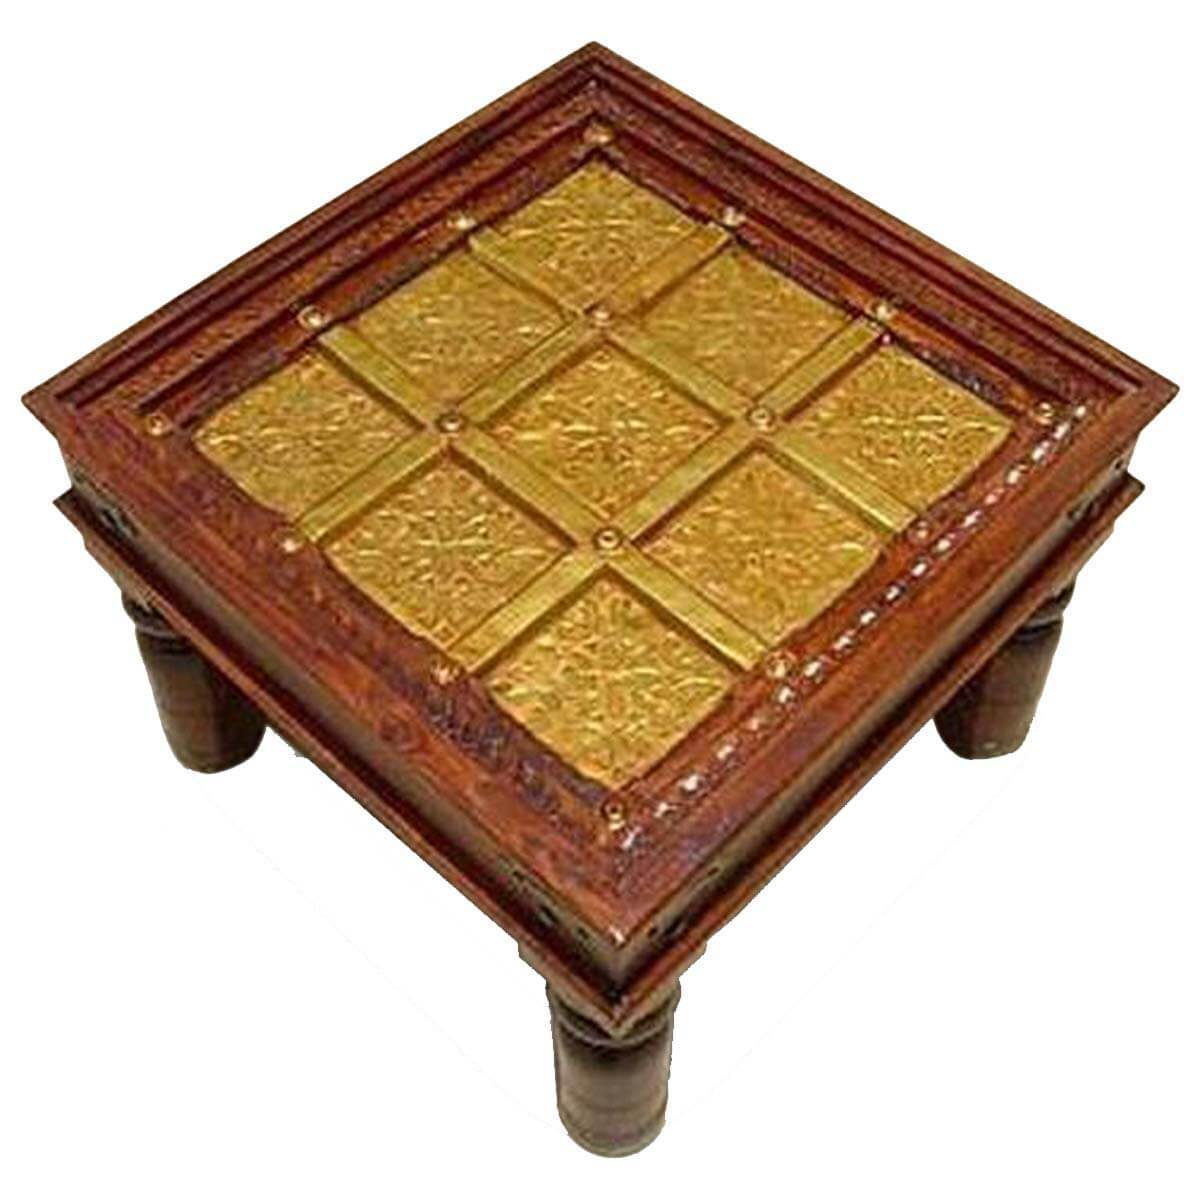 Virage Solid Wood Handcrafted Brass Work Square End Table